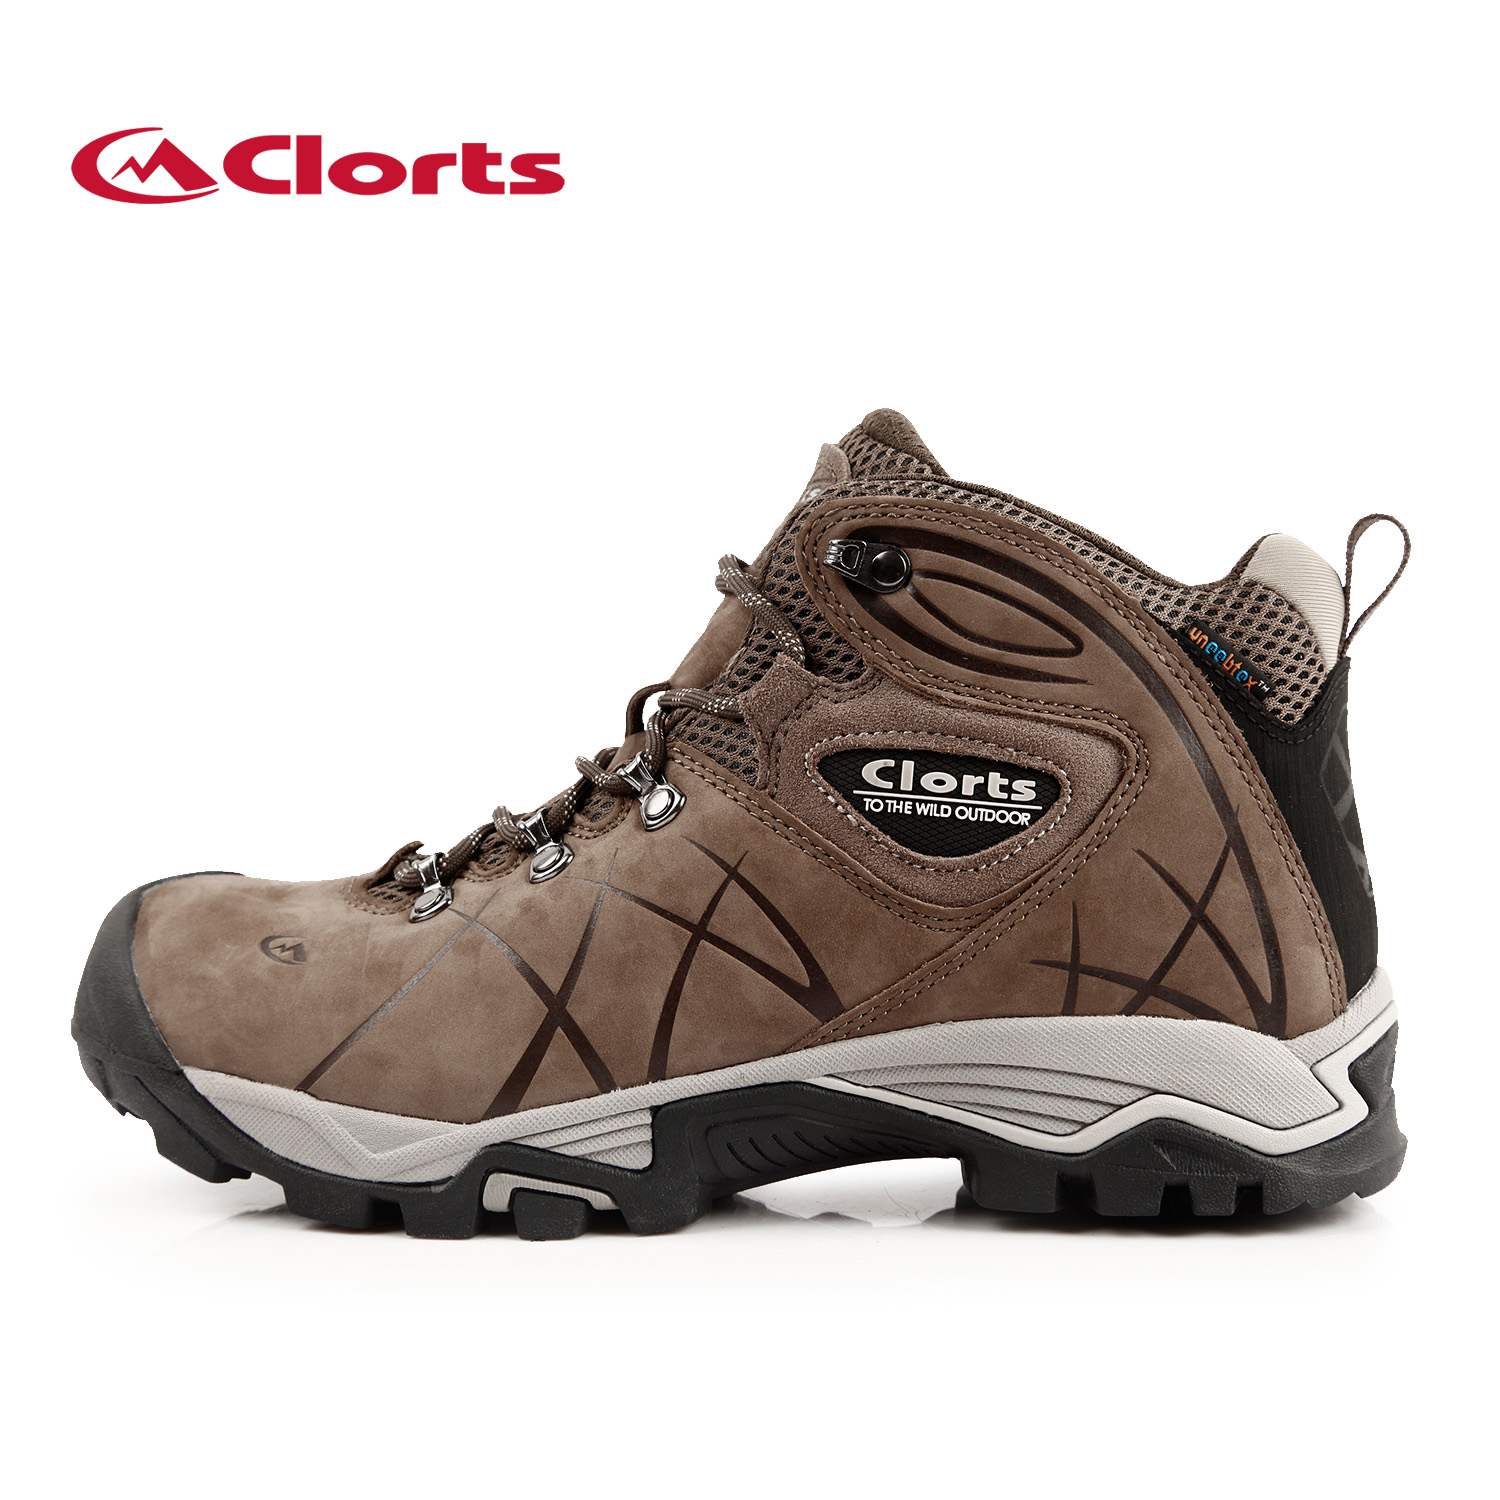 New Clorts Wateroof Hiking Boots Men Professional Outdoor Trekking Climbing Mountaineering Shoes Breathable Hiking Shoes For Men clorts outdoor hiking shoes walking men climbing shoes sport boots hunting mountain shoes non slip breathable hunting boots